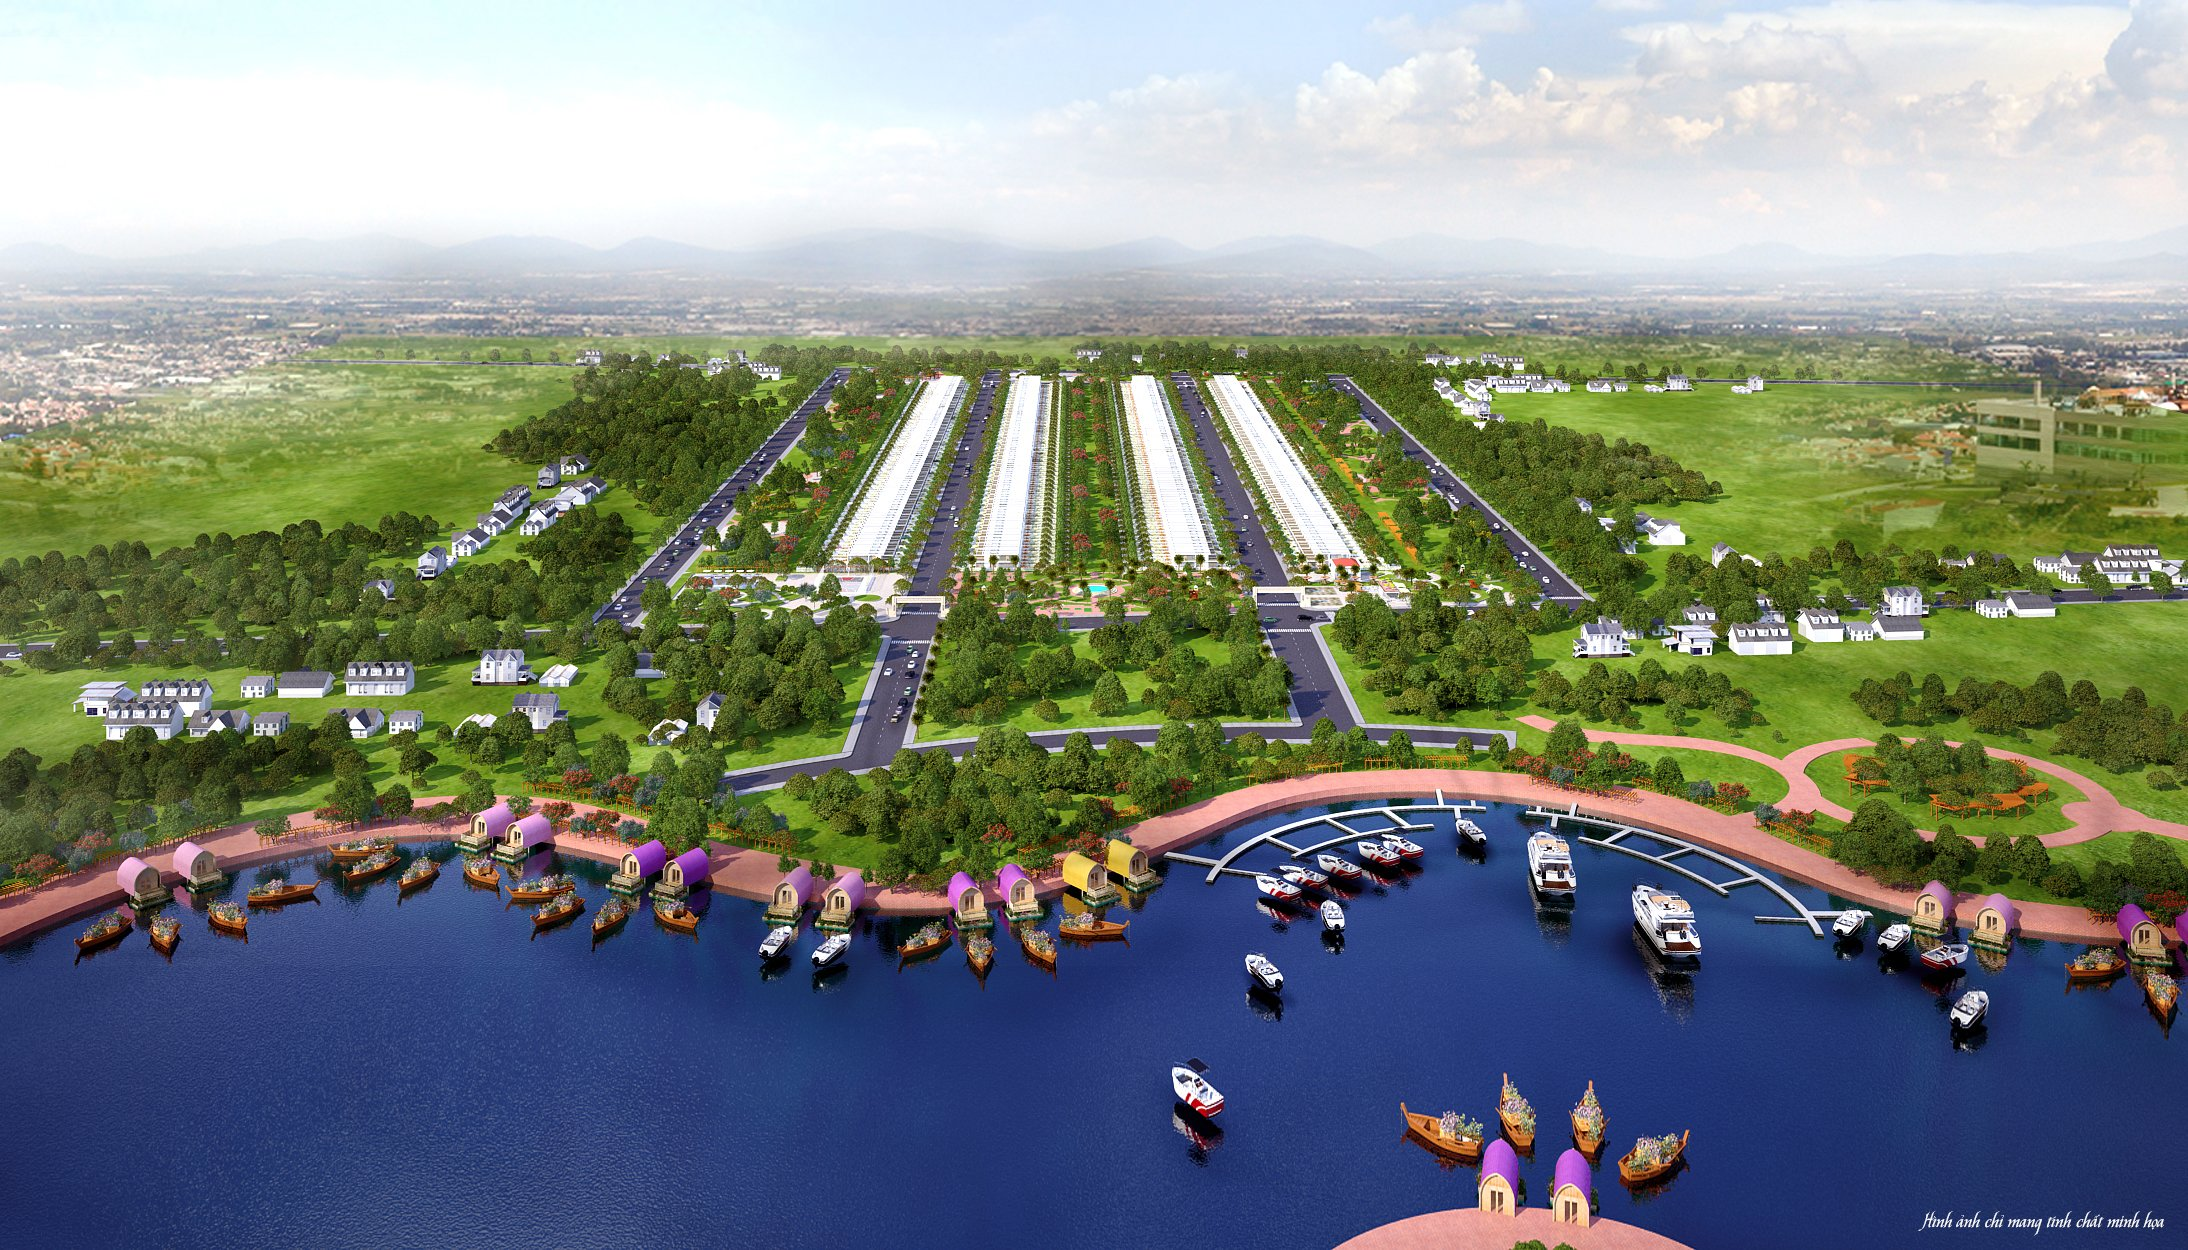 tien ich phu my future city - PHÚ MỸ FUTURE CITY